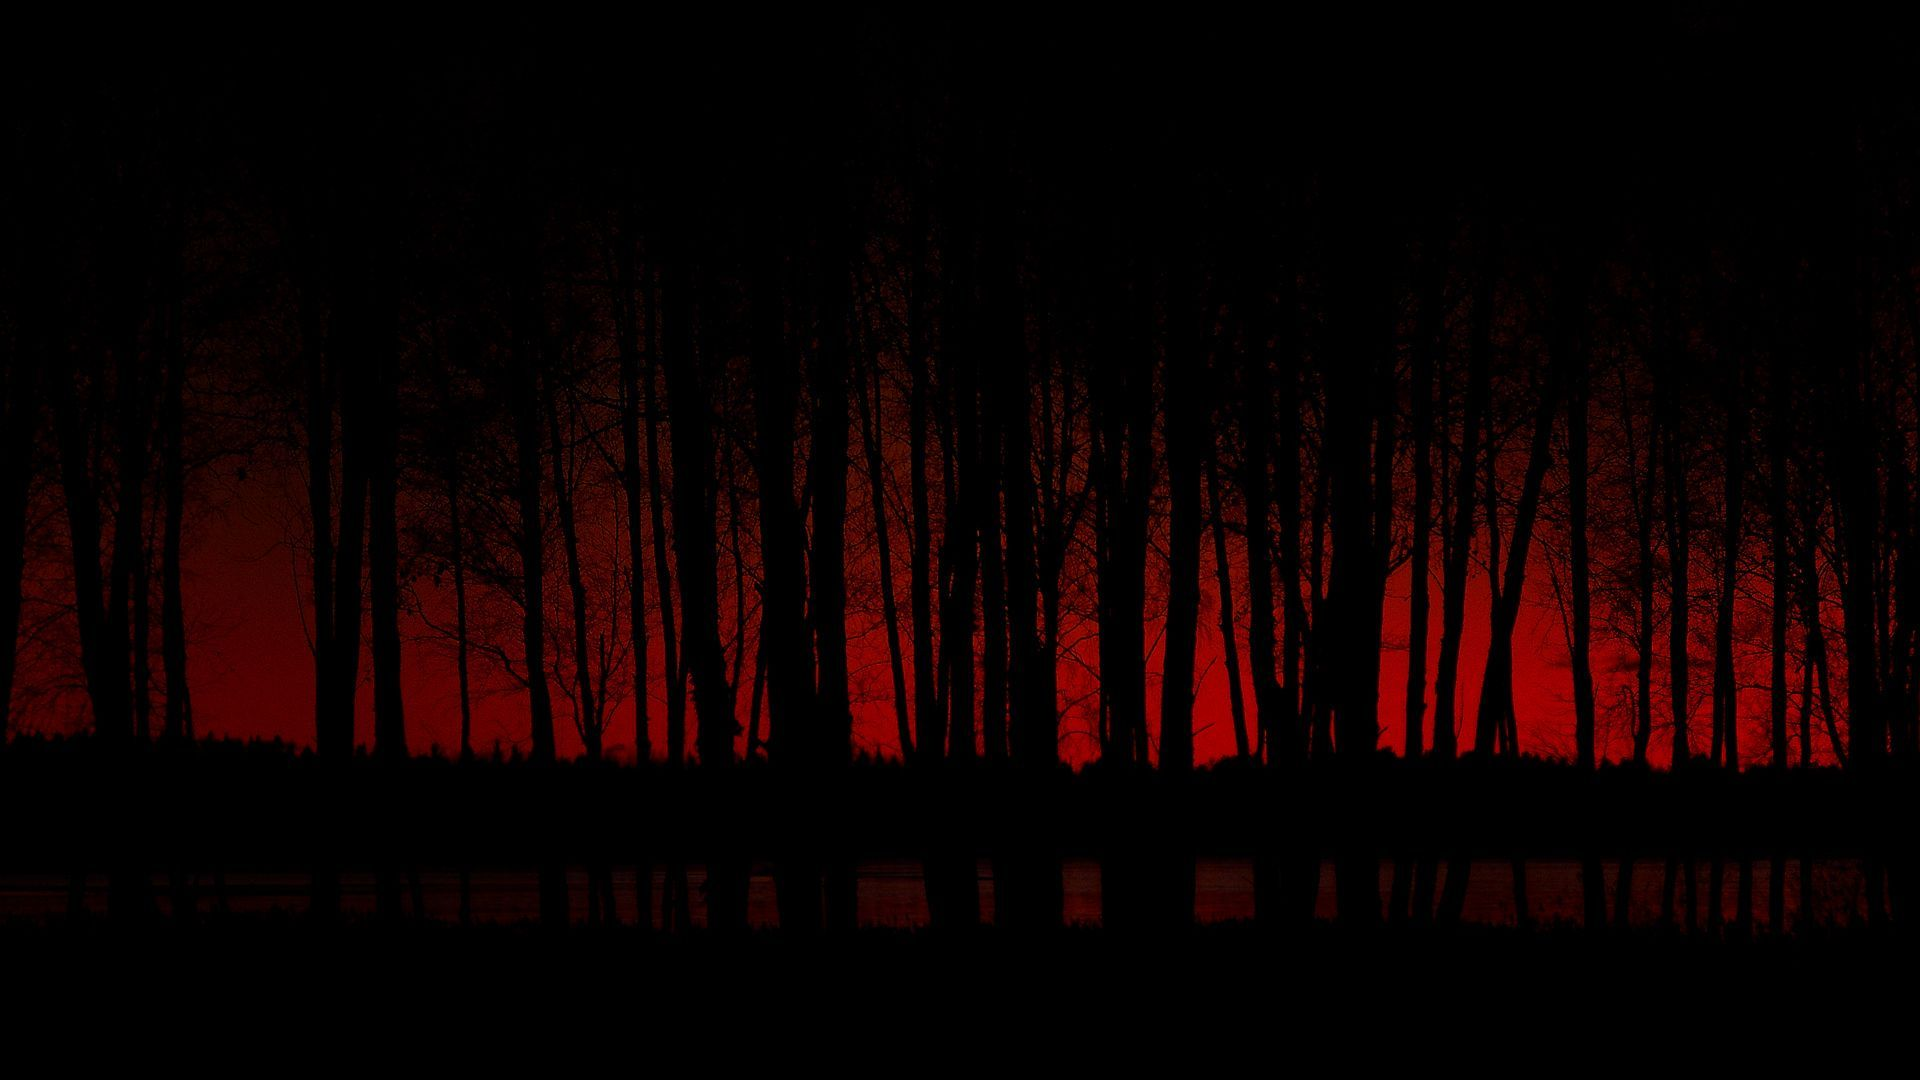 Changed Up For Adoption Dark Red Wallpaper Forest Wallpaper Dark Wallpaper